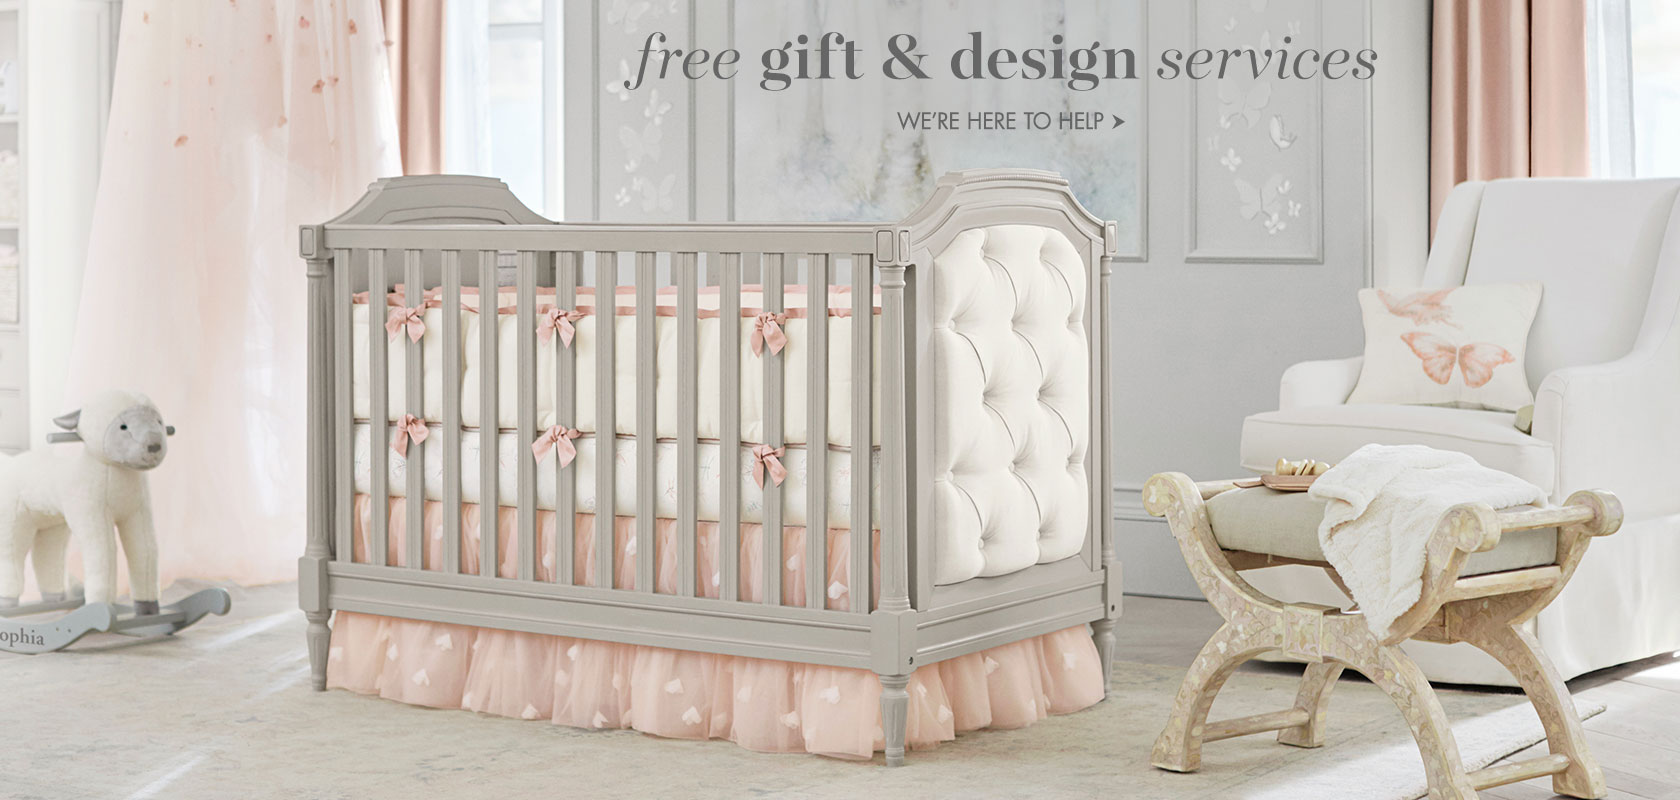 Free gift & design services